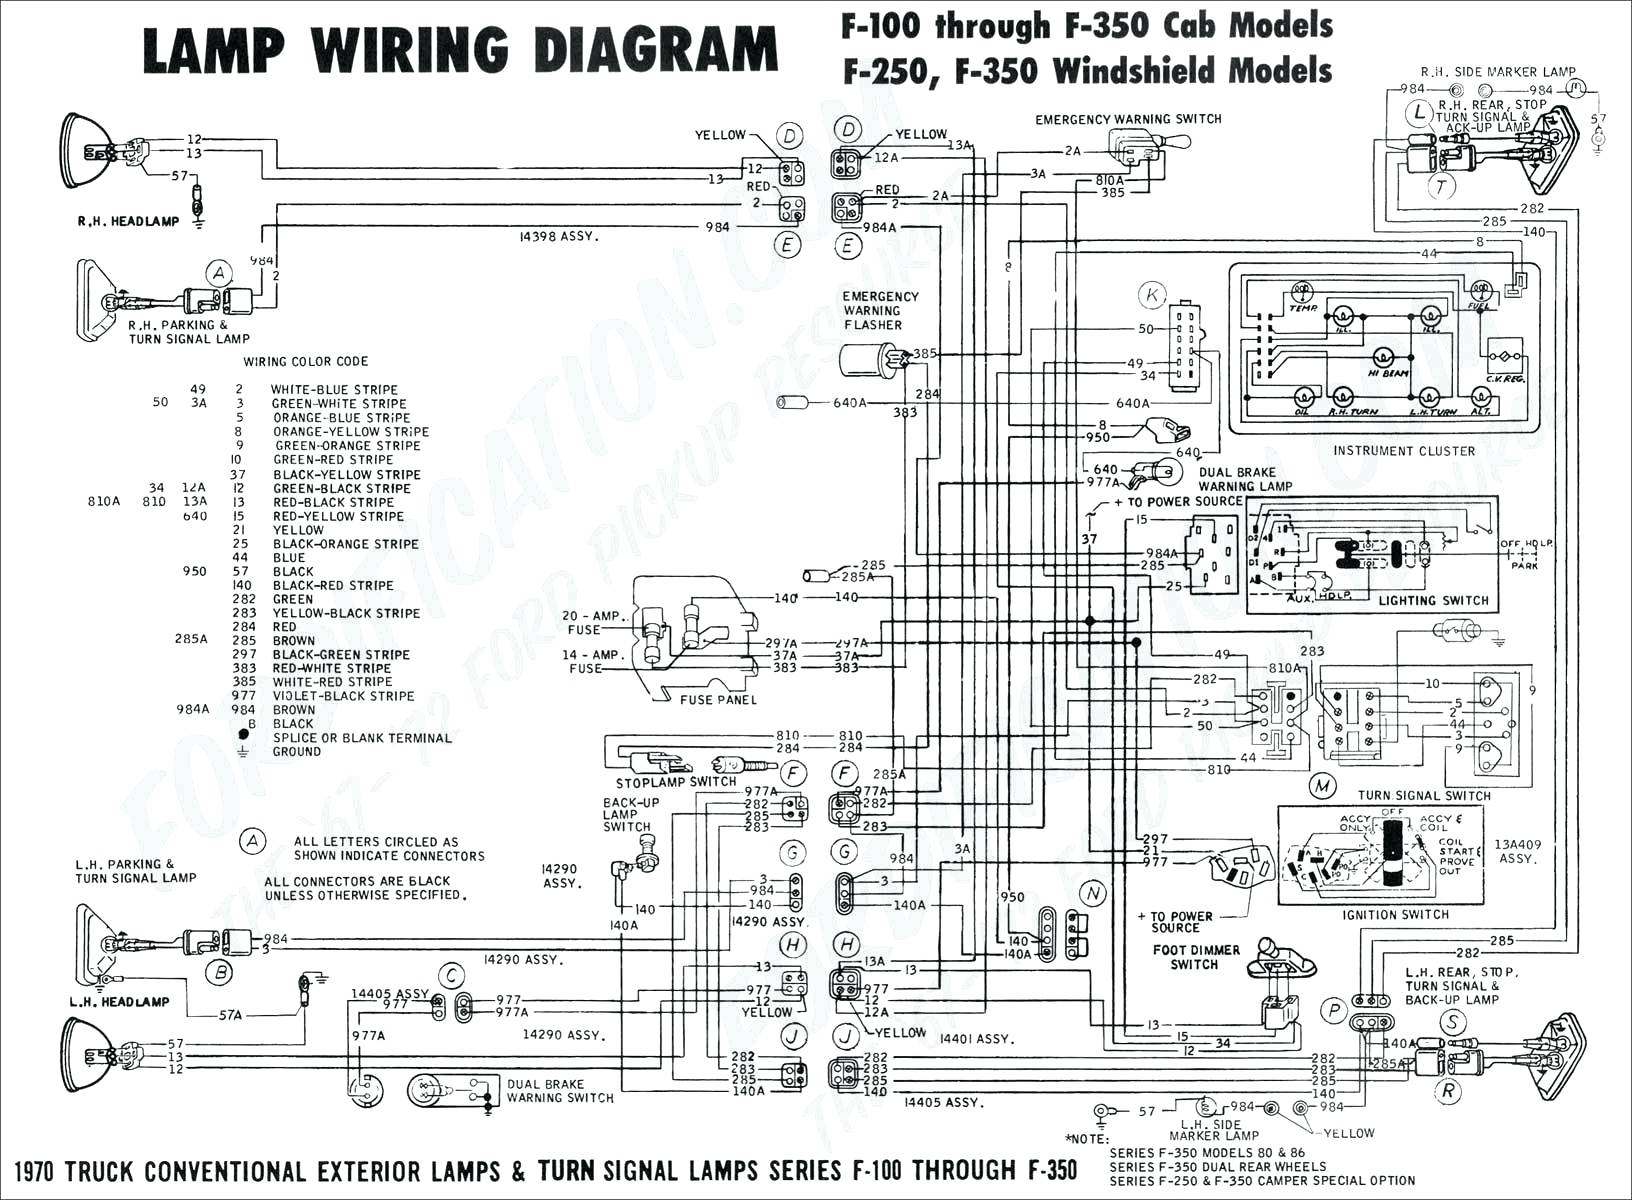 1998 chevy suburban wiring harness 2003 chevy suburban wiring diagram | free wiring diagram